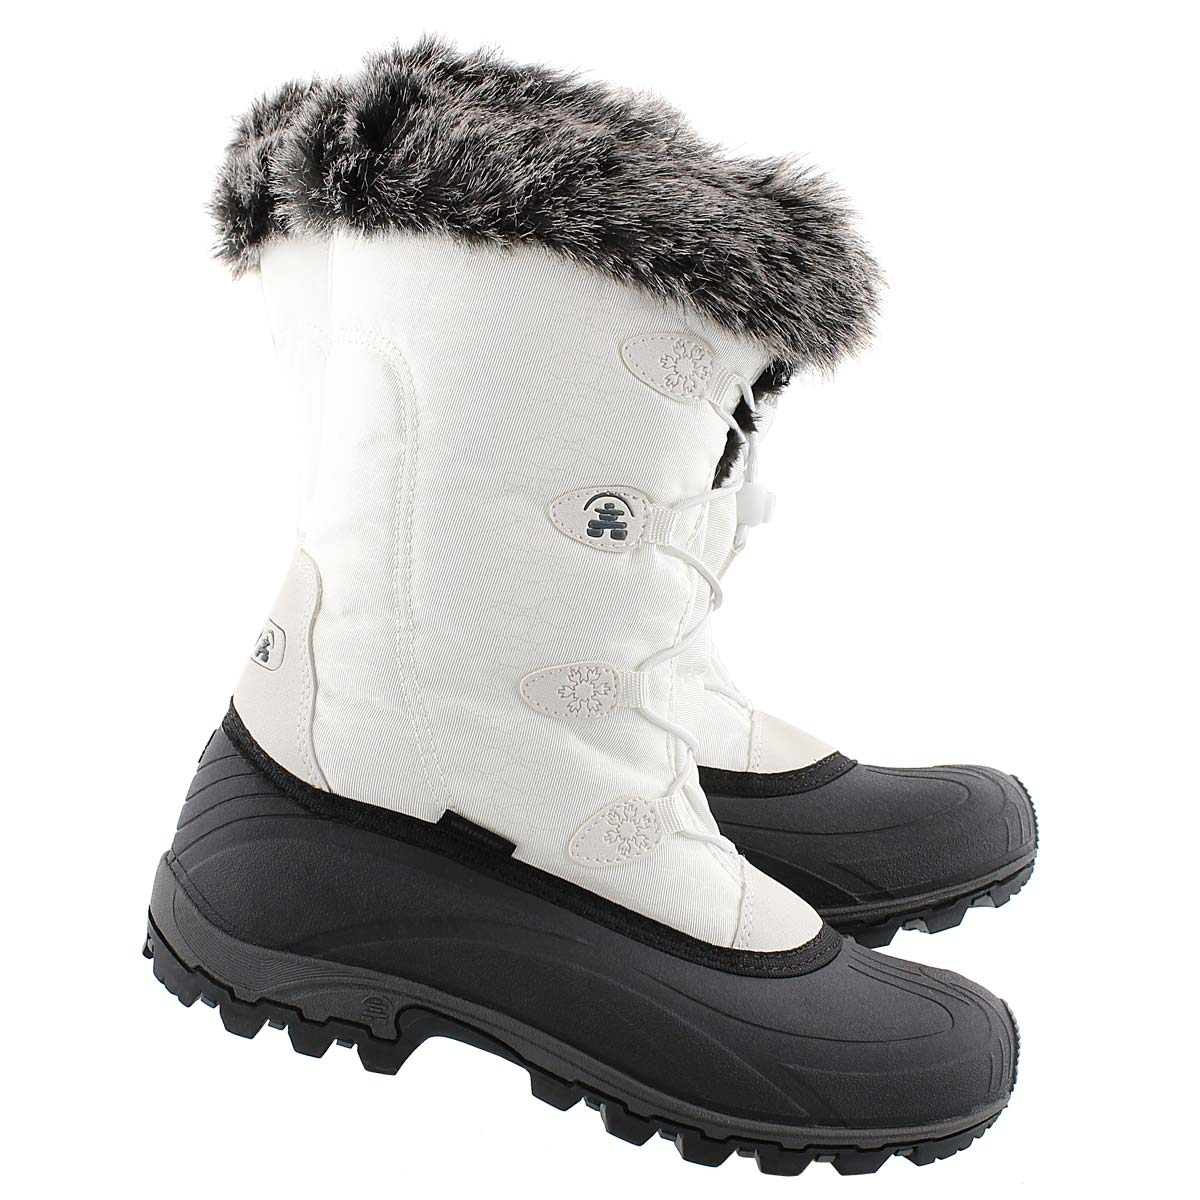 Lds Momentum white winter boot